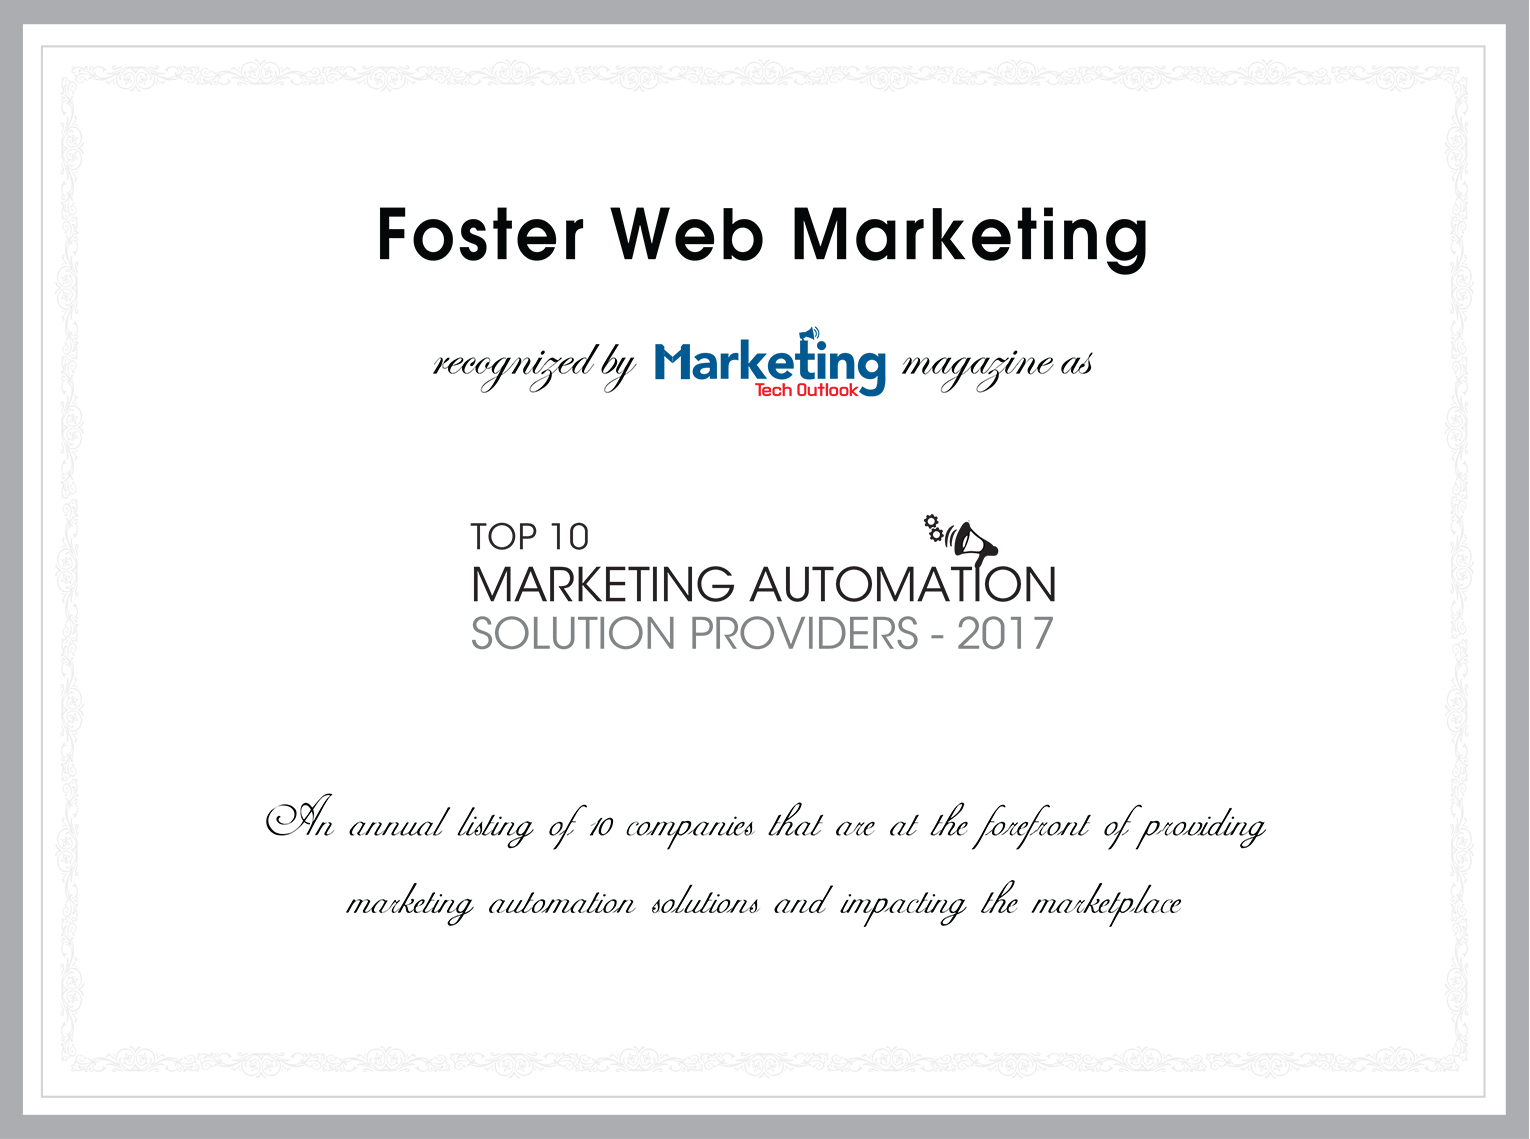 Foster Web Marketing recognized by Marketing Tech Outlook magazine as Top 10 Marketing Automation Solution Providers - 2017